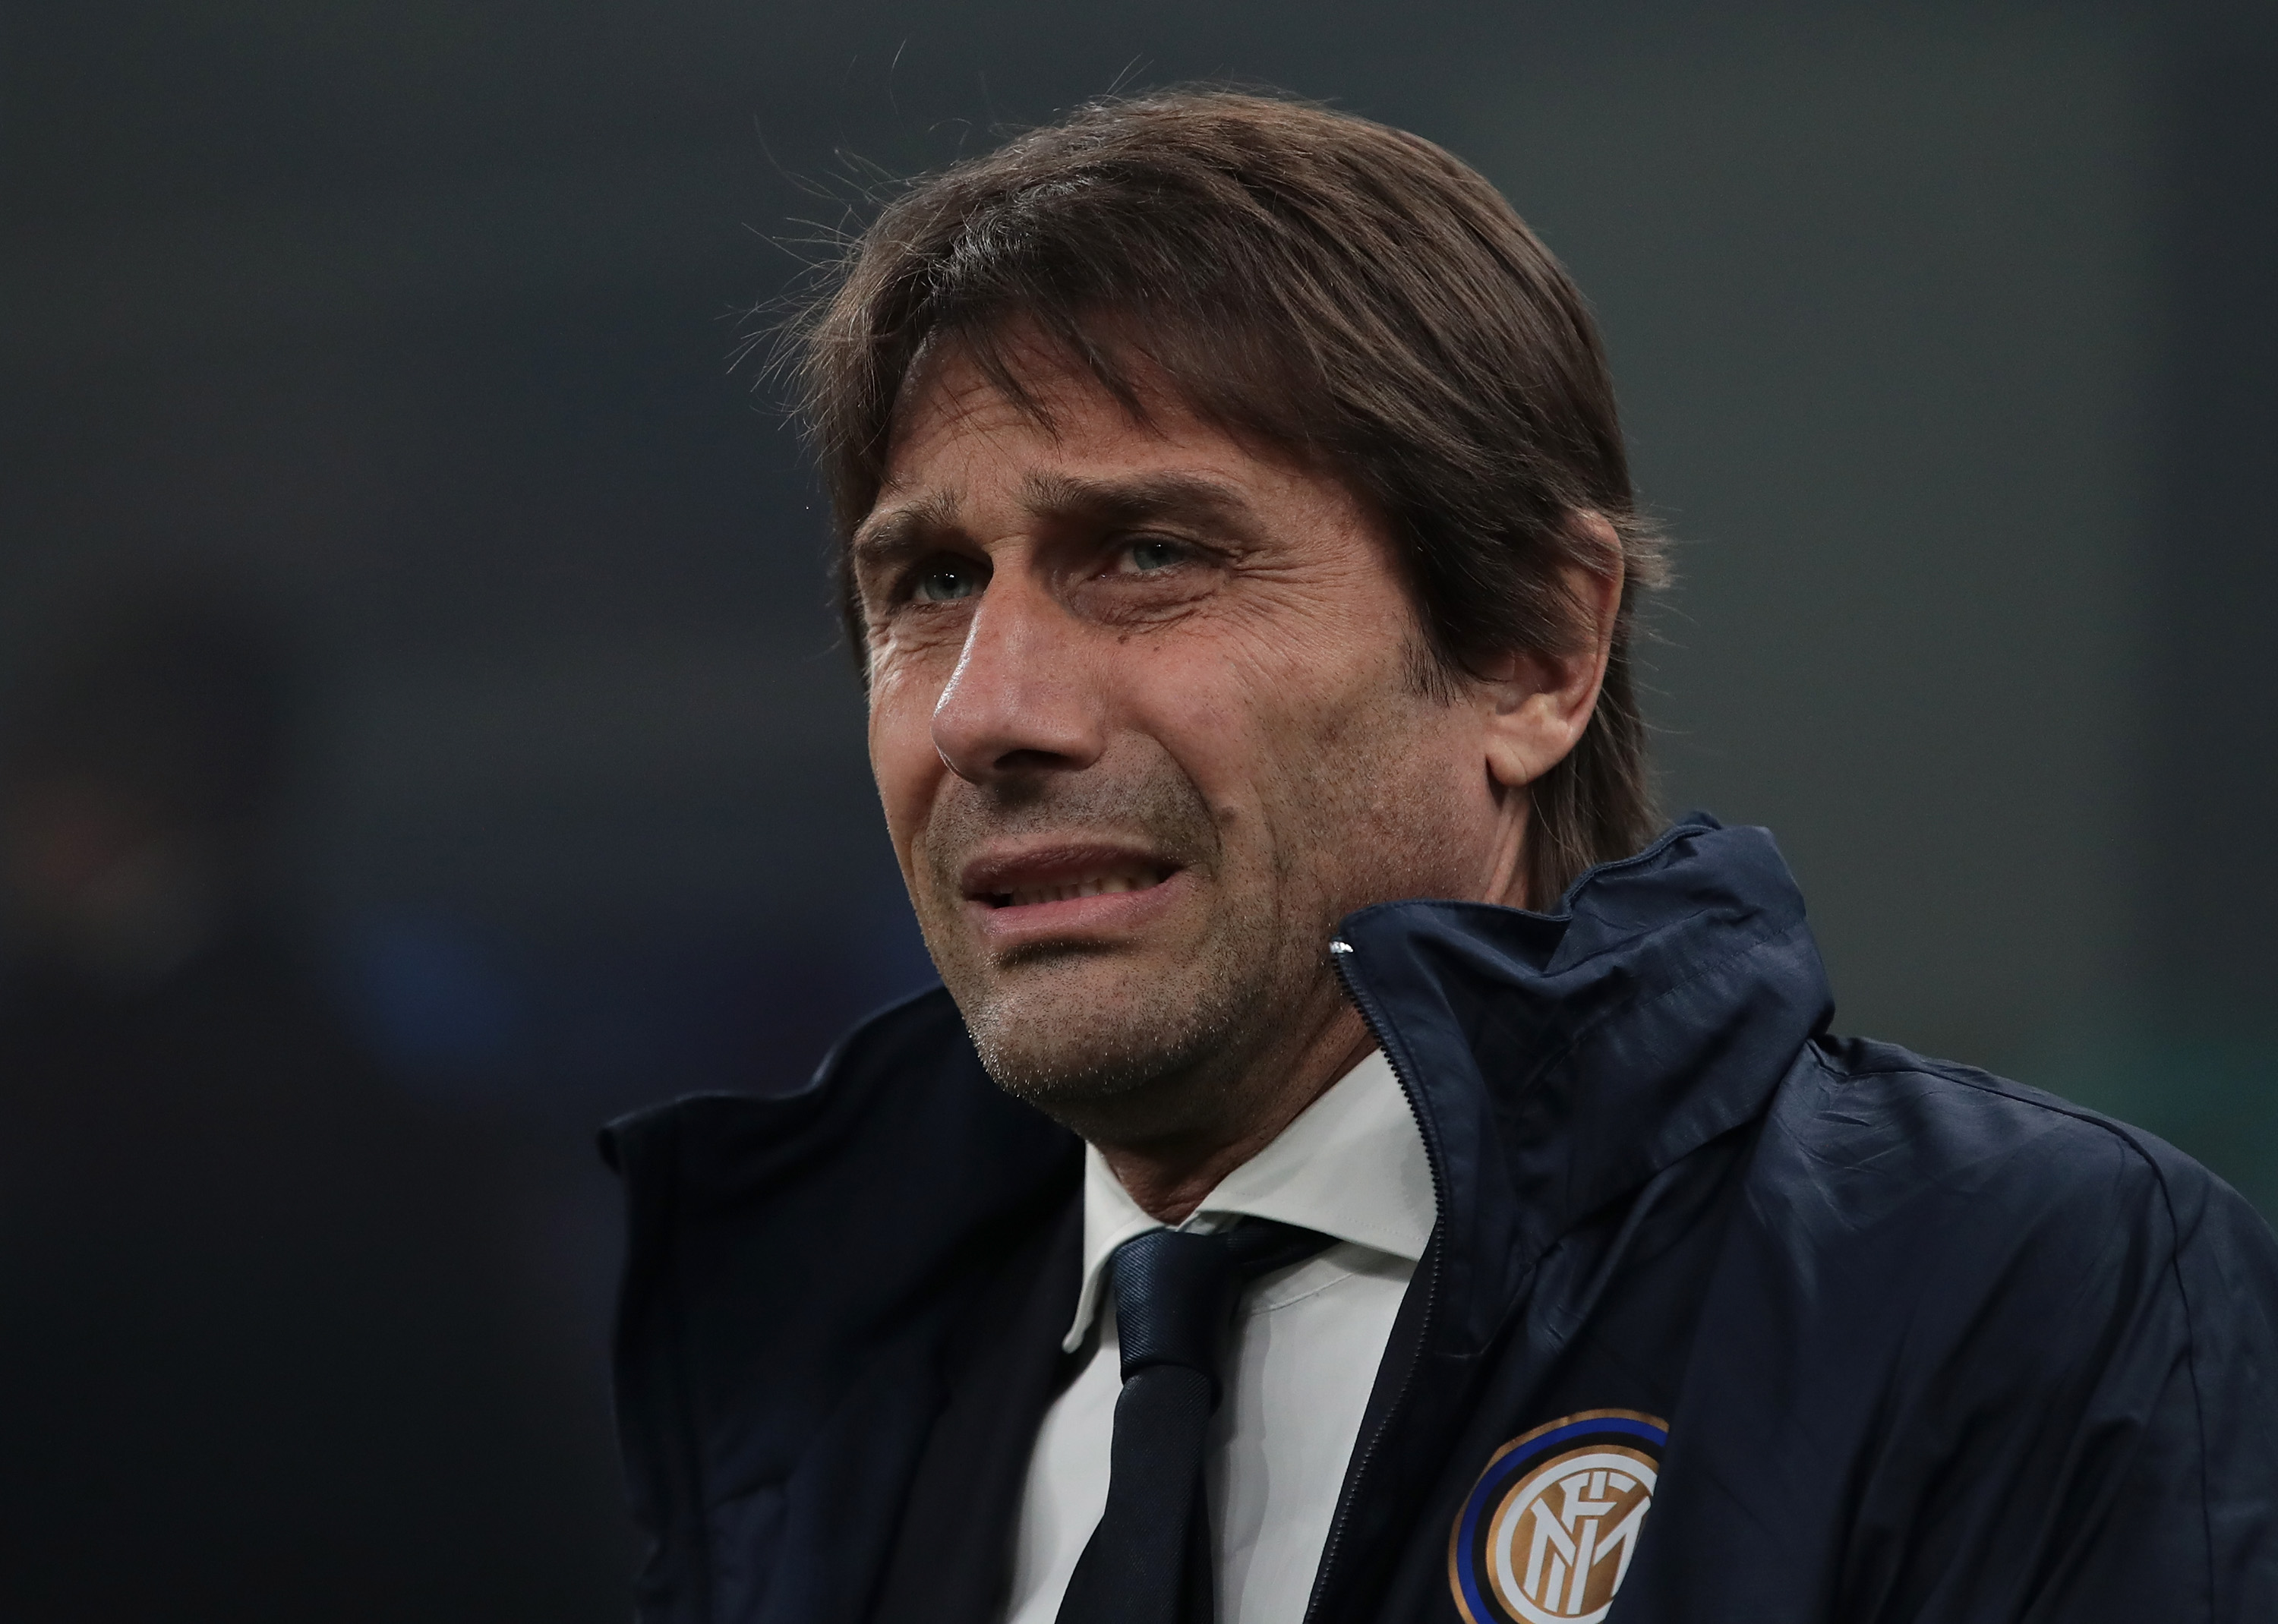 Will Antonio Conte take Inter Milan all the way this season? (Photo by Emilio Andreoli/Getty Images)